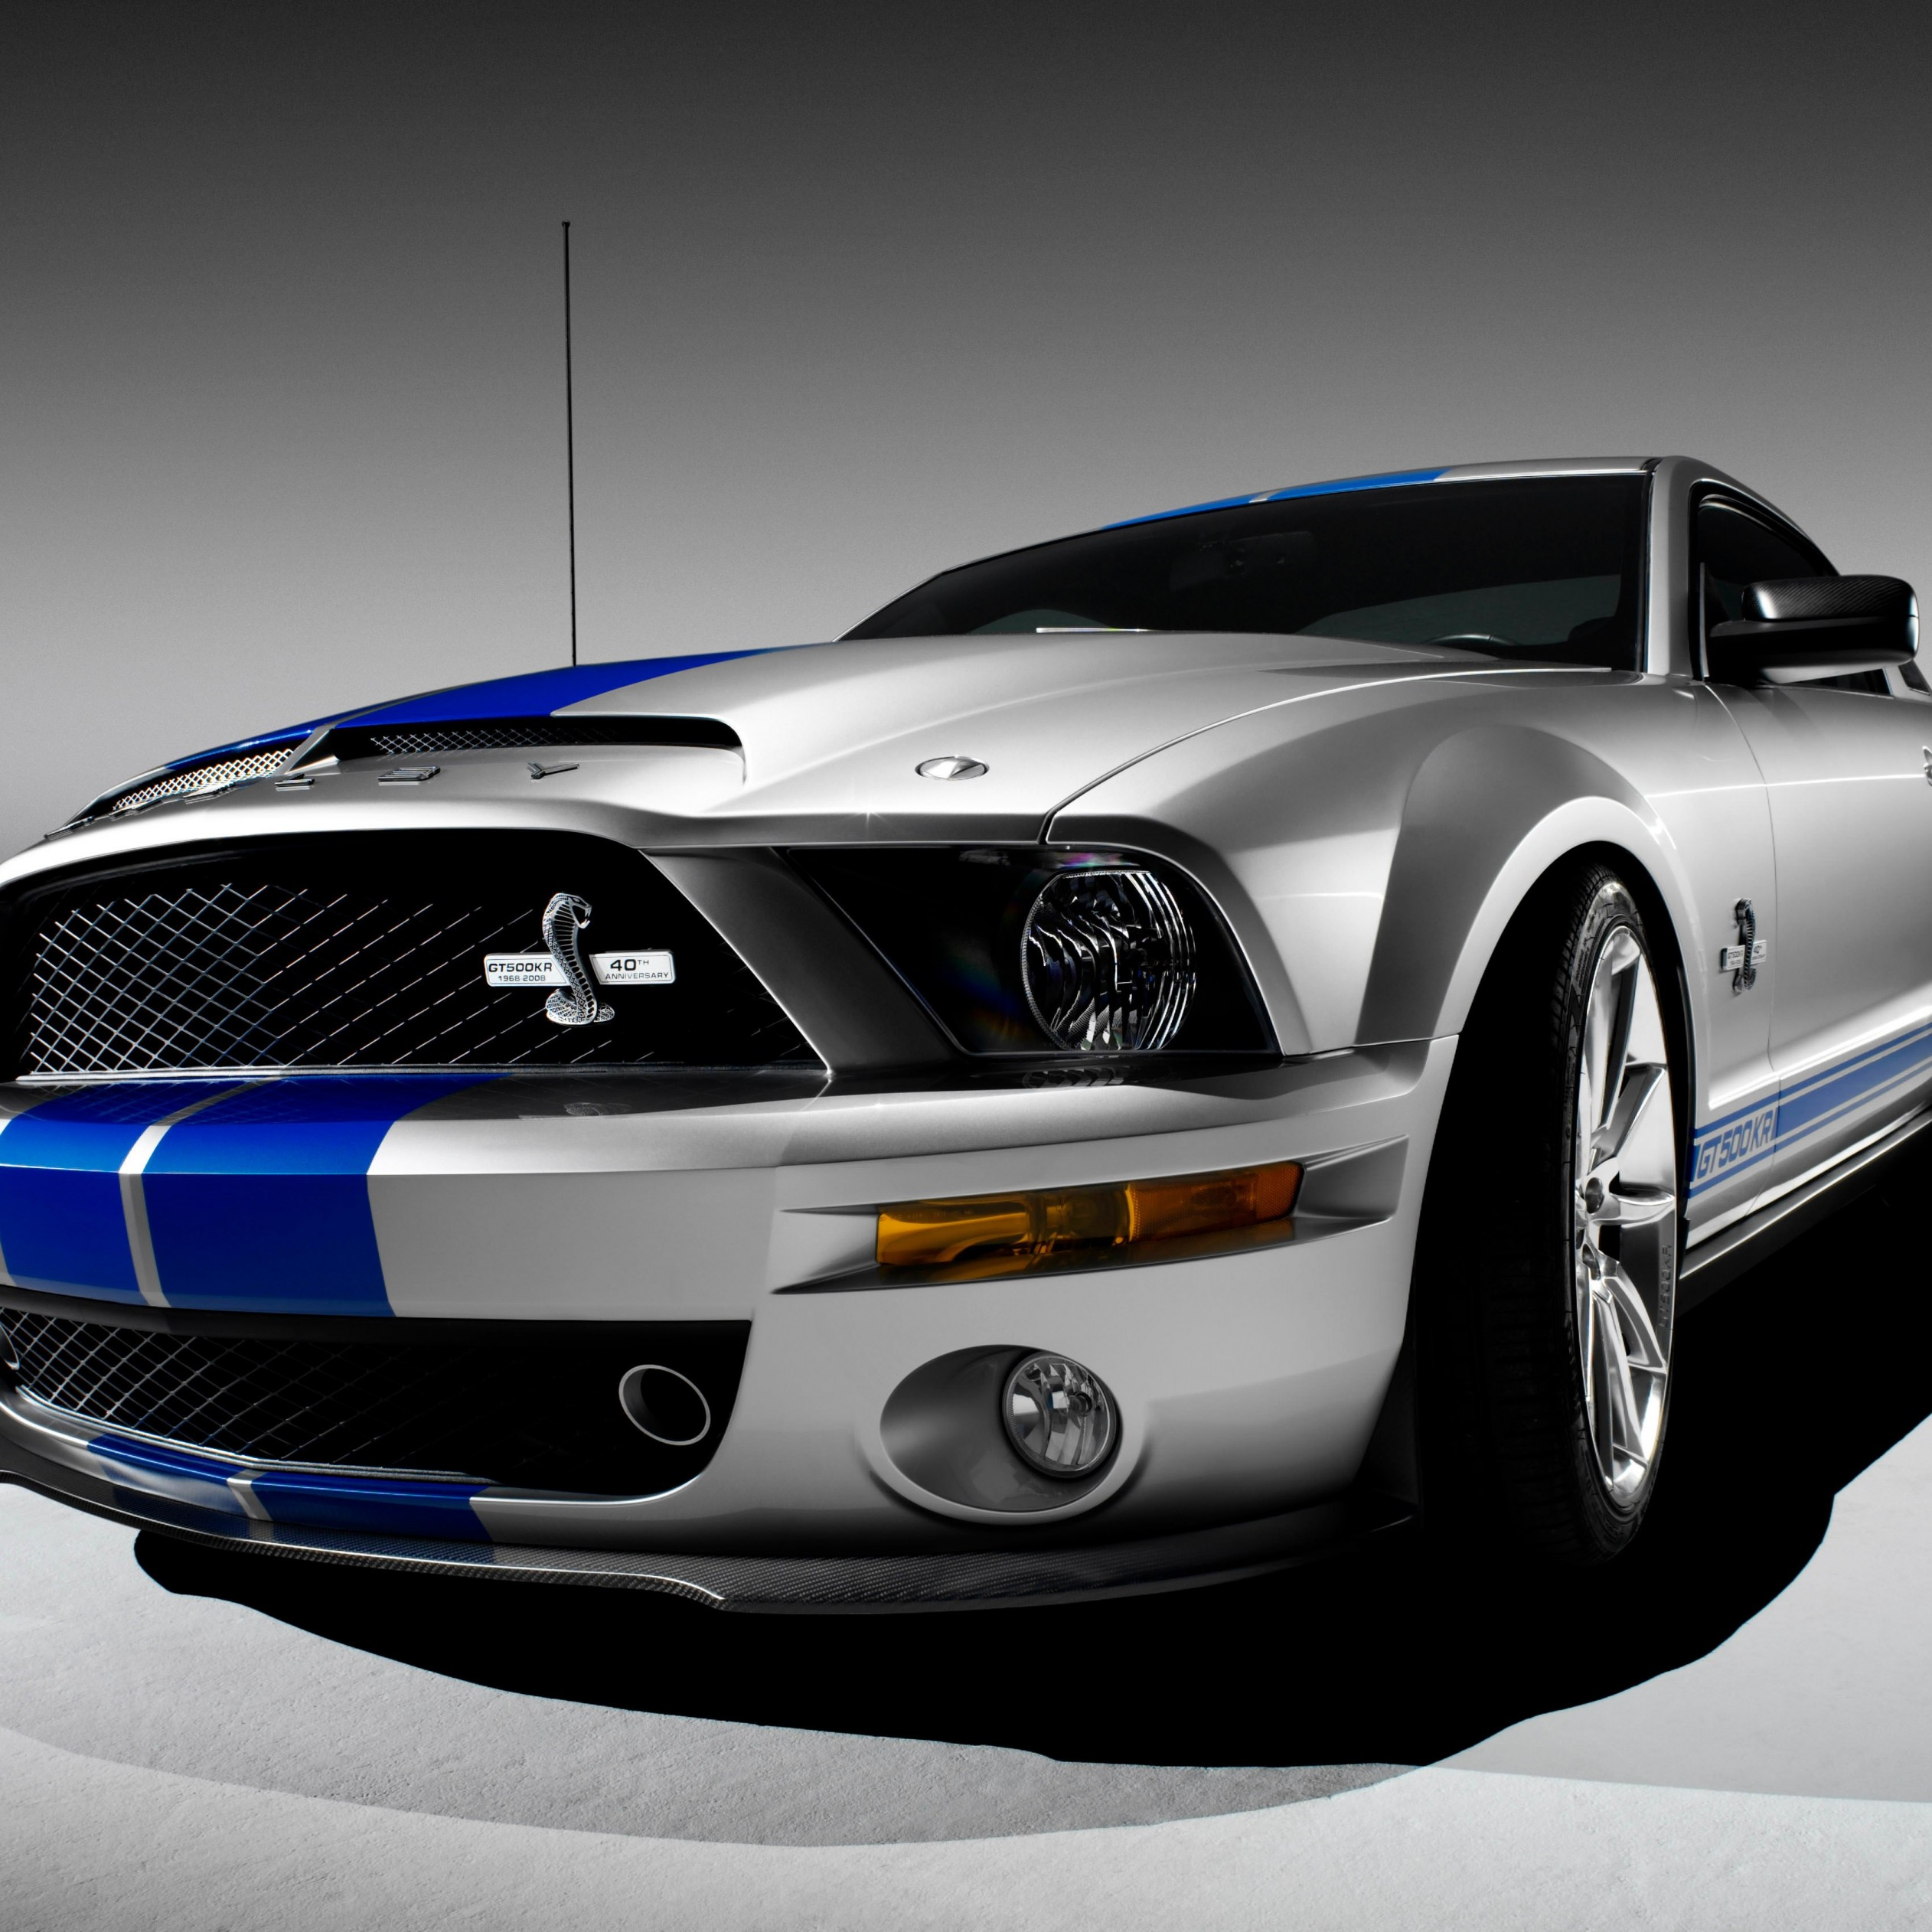 Shelby Mustang GT500KR Wallpaper for Apple iPad Air